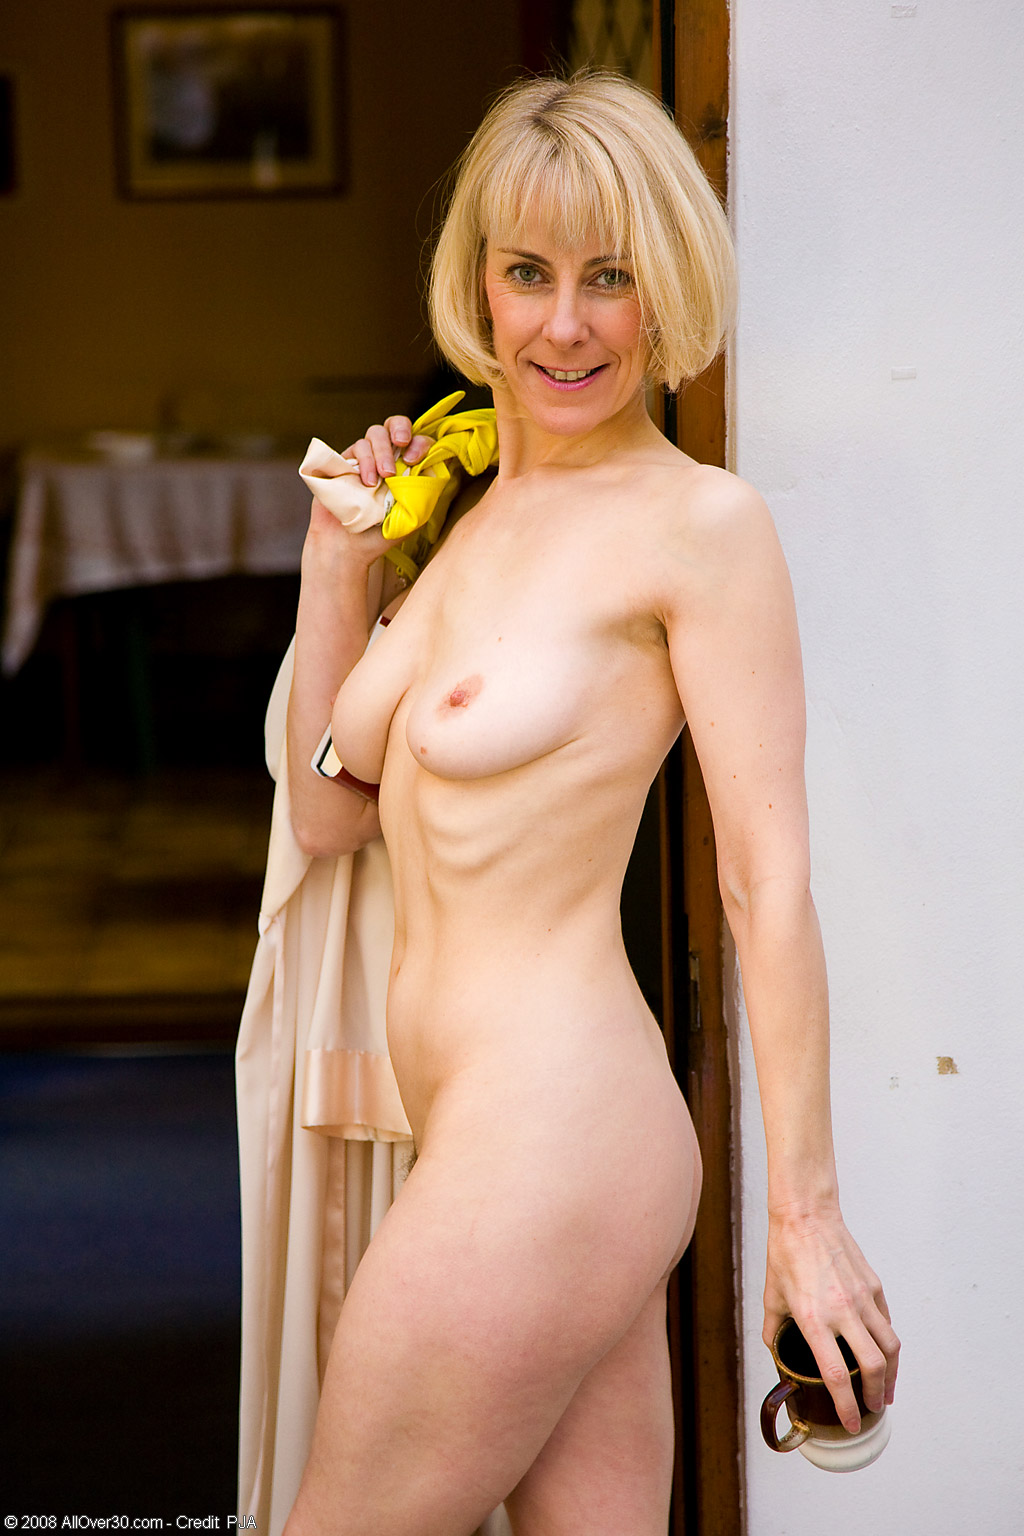 allover30 model http://tour.allover30 .com/v2.2/Mature_Models/53_Year_Old_Blonde_Hazel/images/Hazel_Posing.jpg